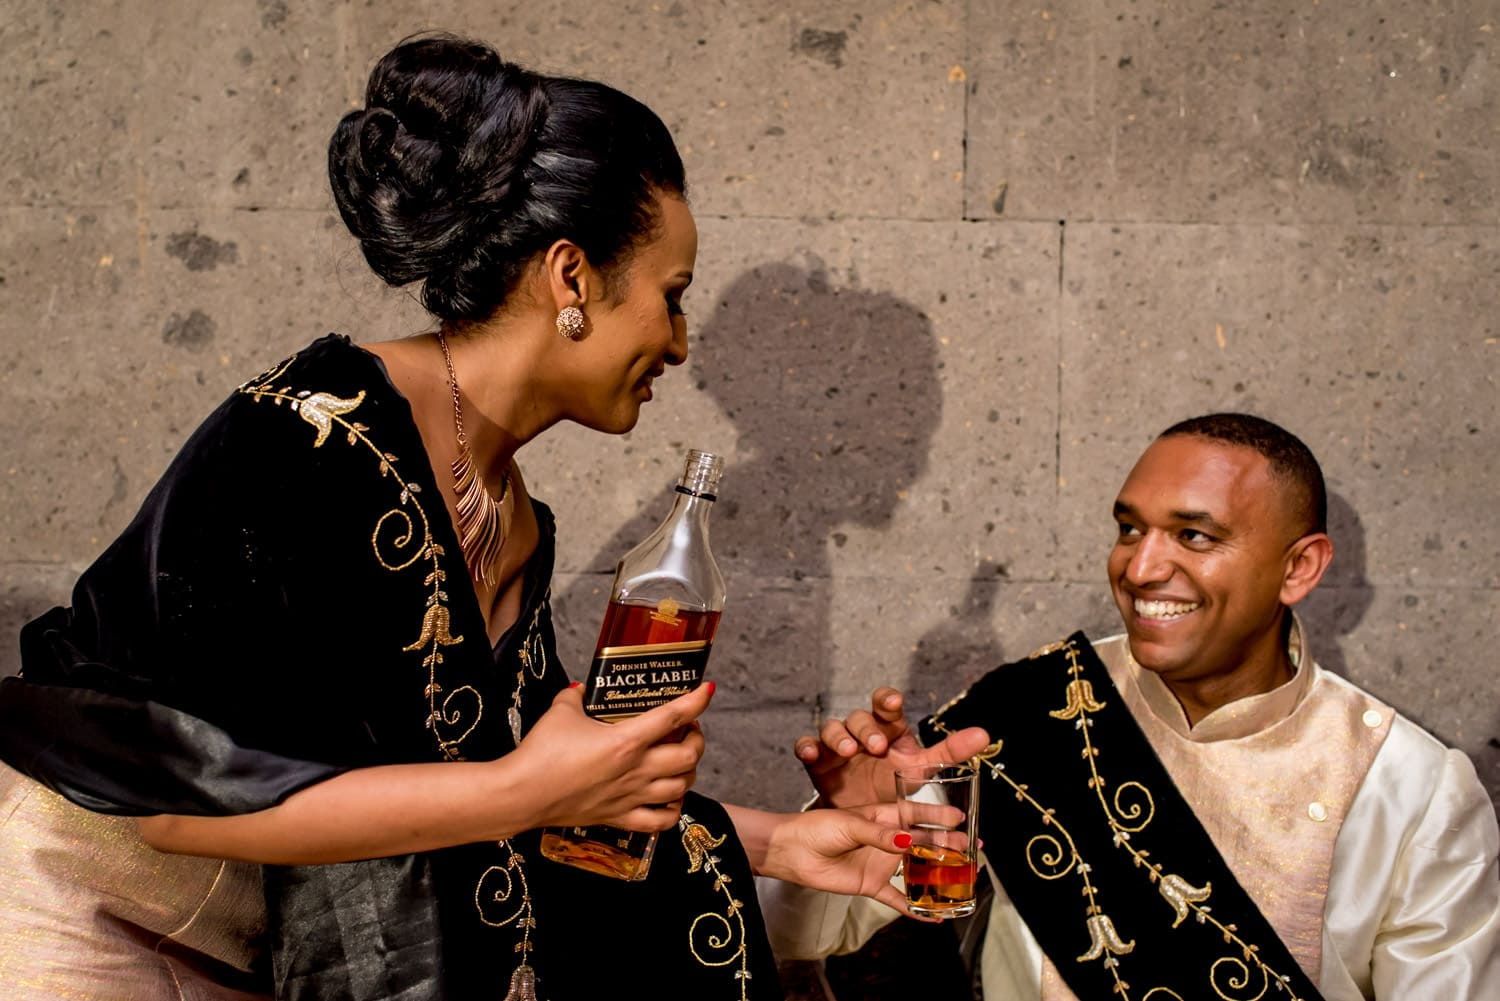 Ethiopian bride pouring groom a glass of johnny walker black label whiskey